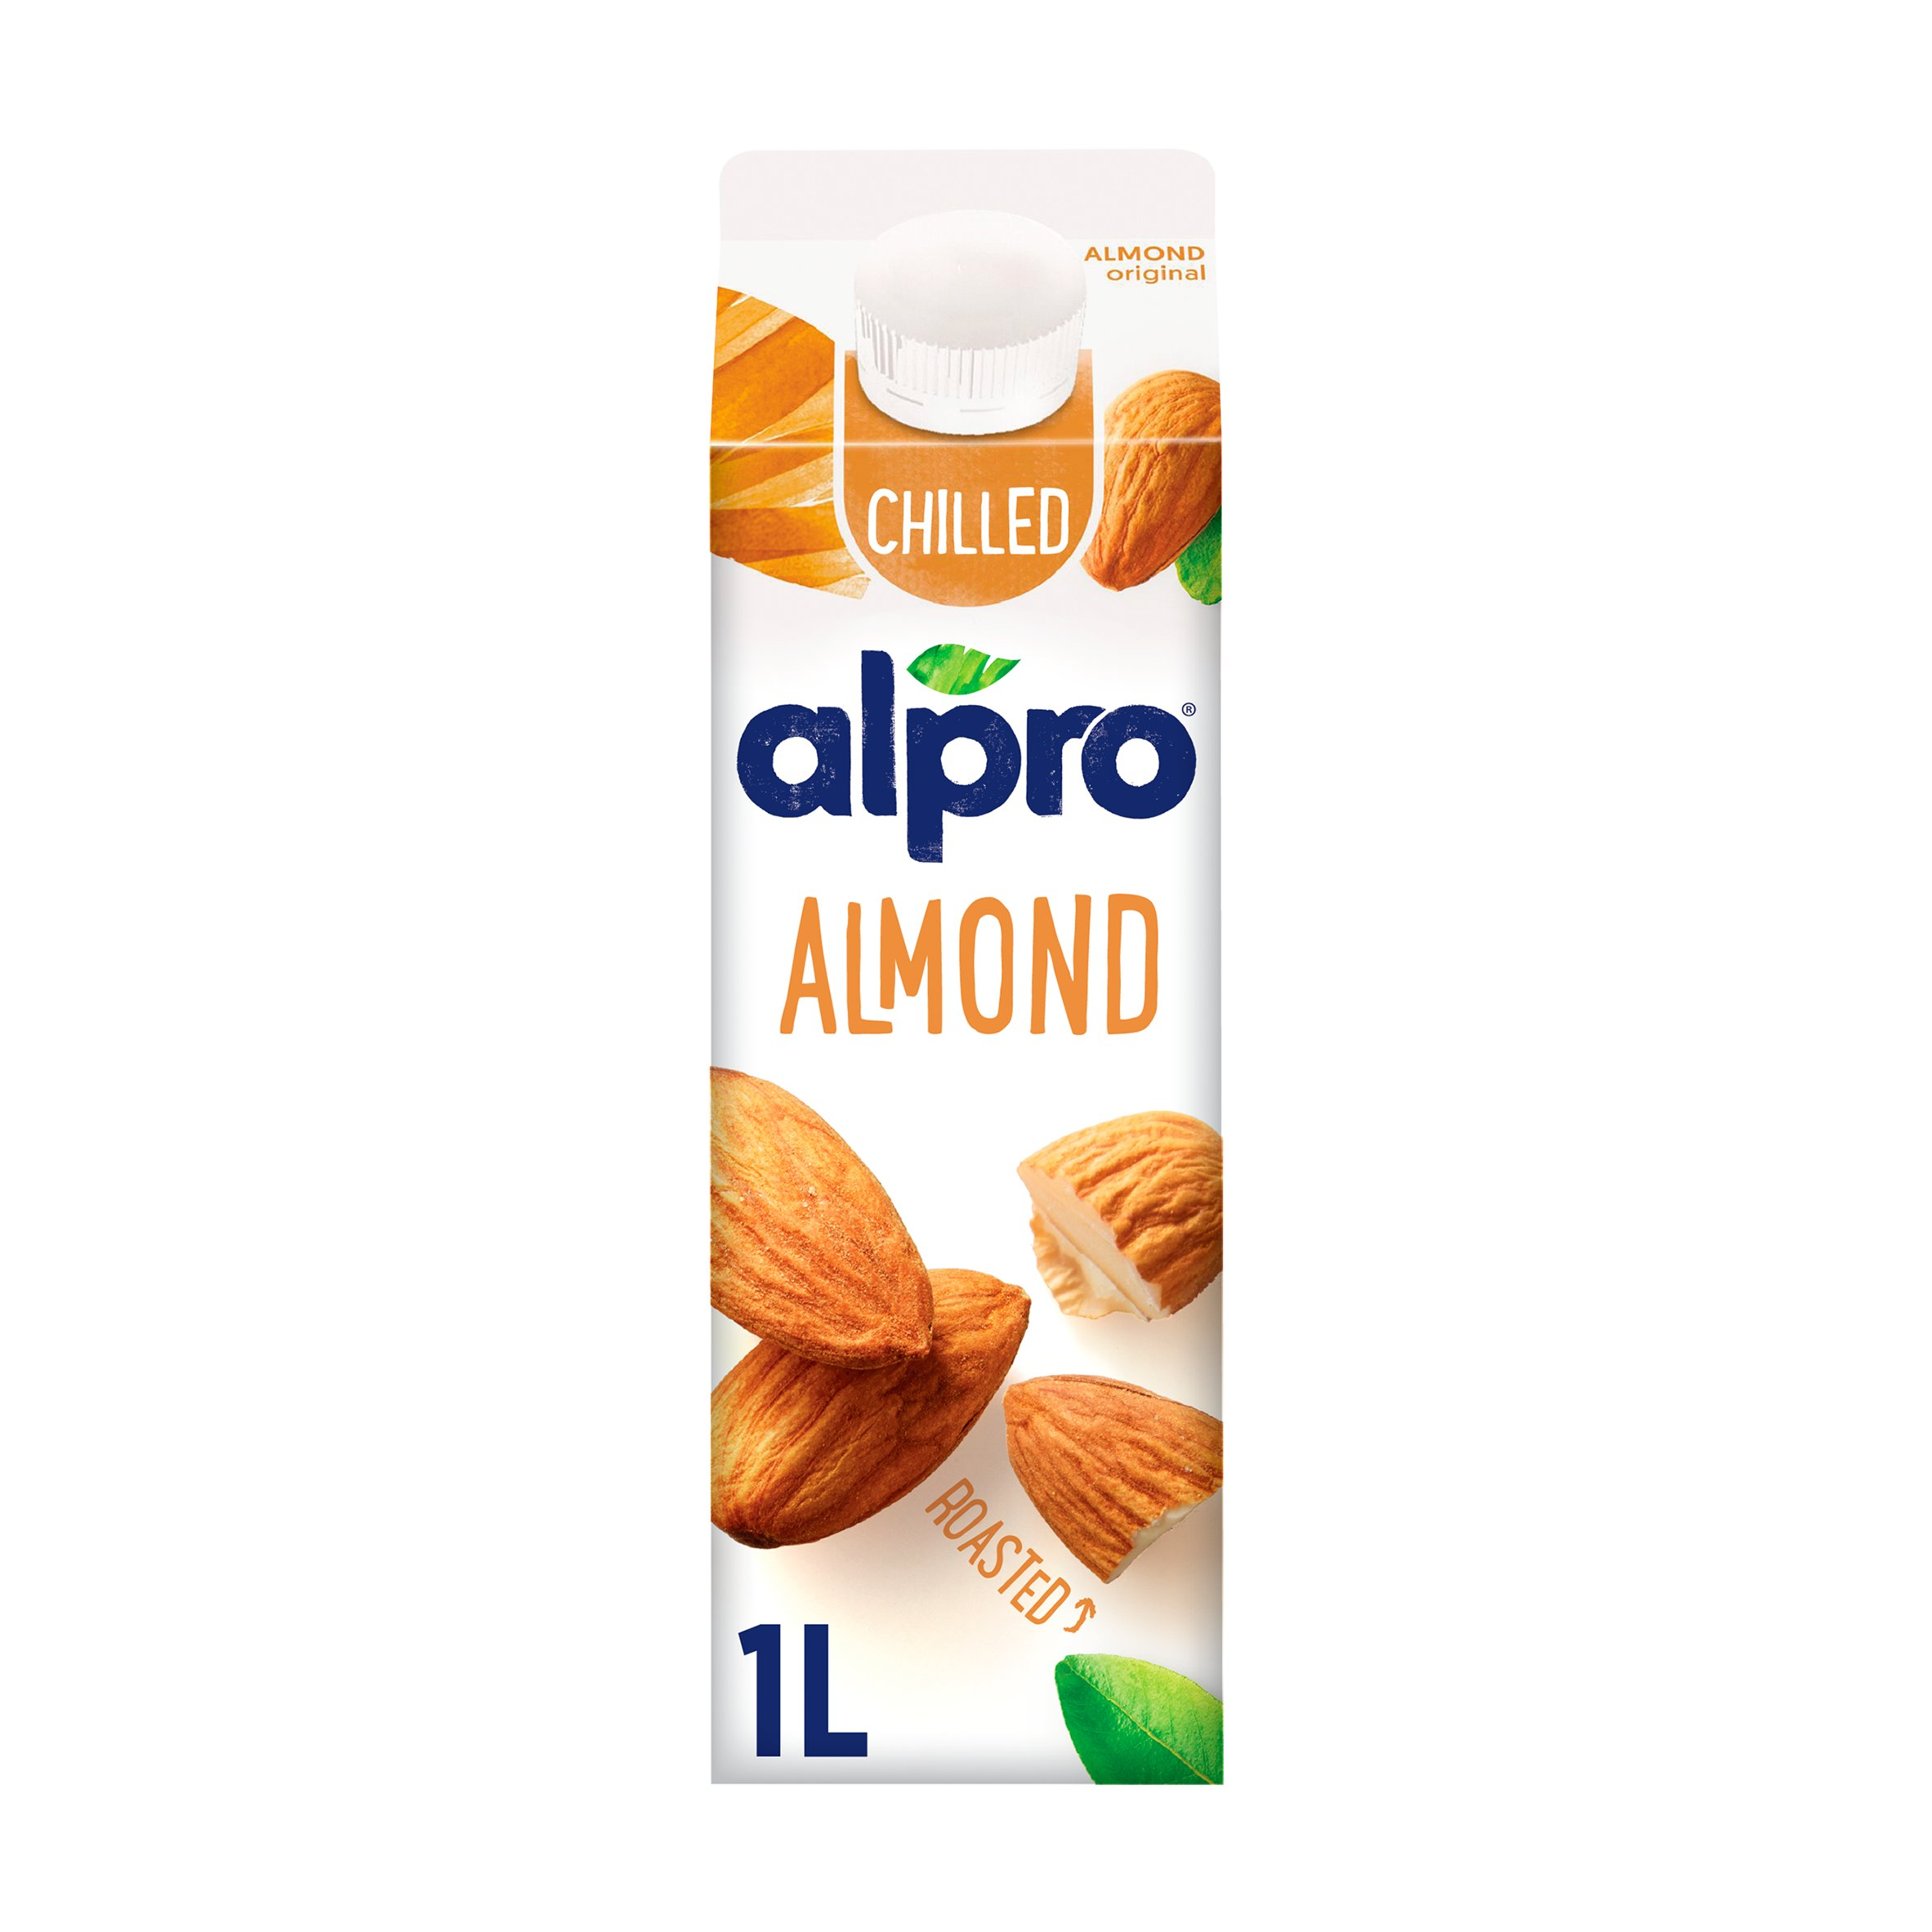 Alpro Almond Chilled Drink 1 Litre